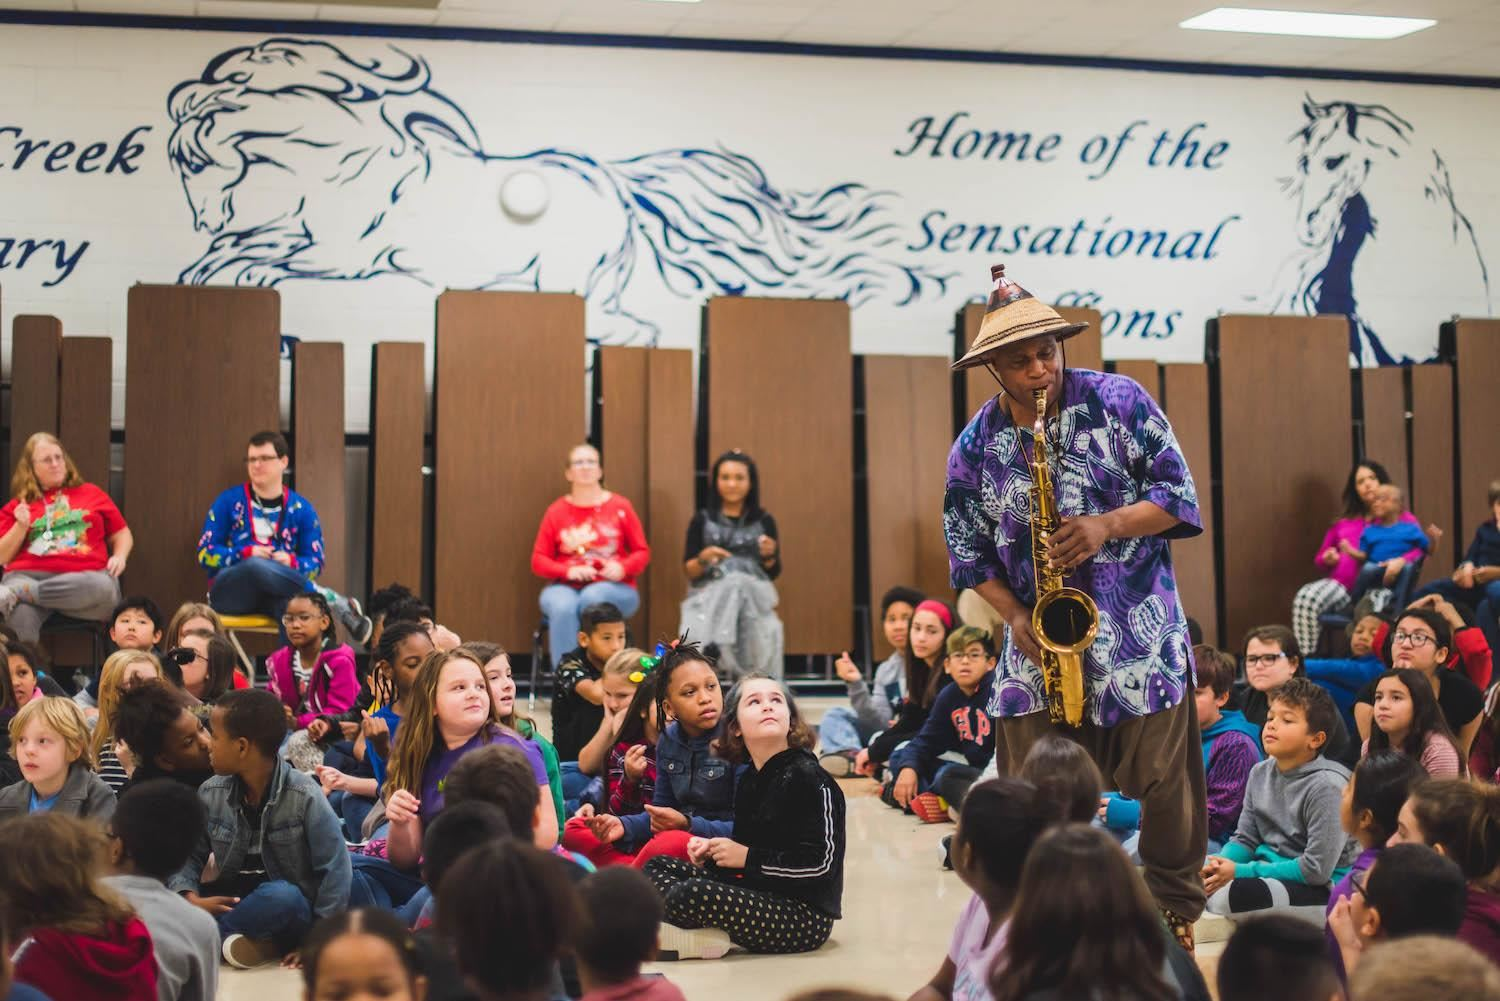 Saxaphone player plays music to students